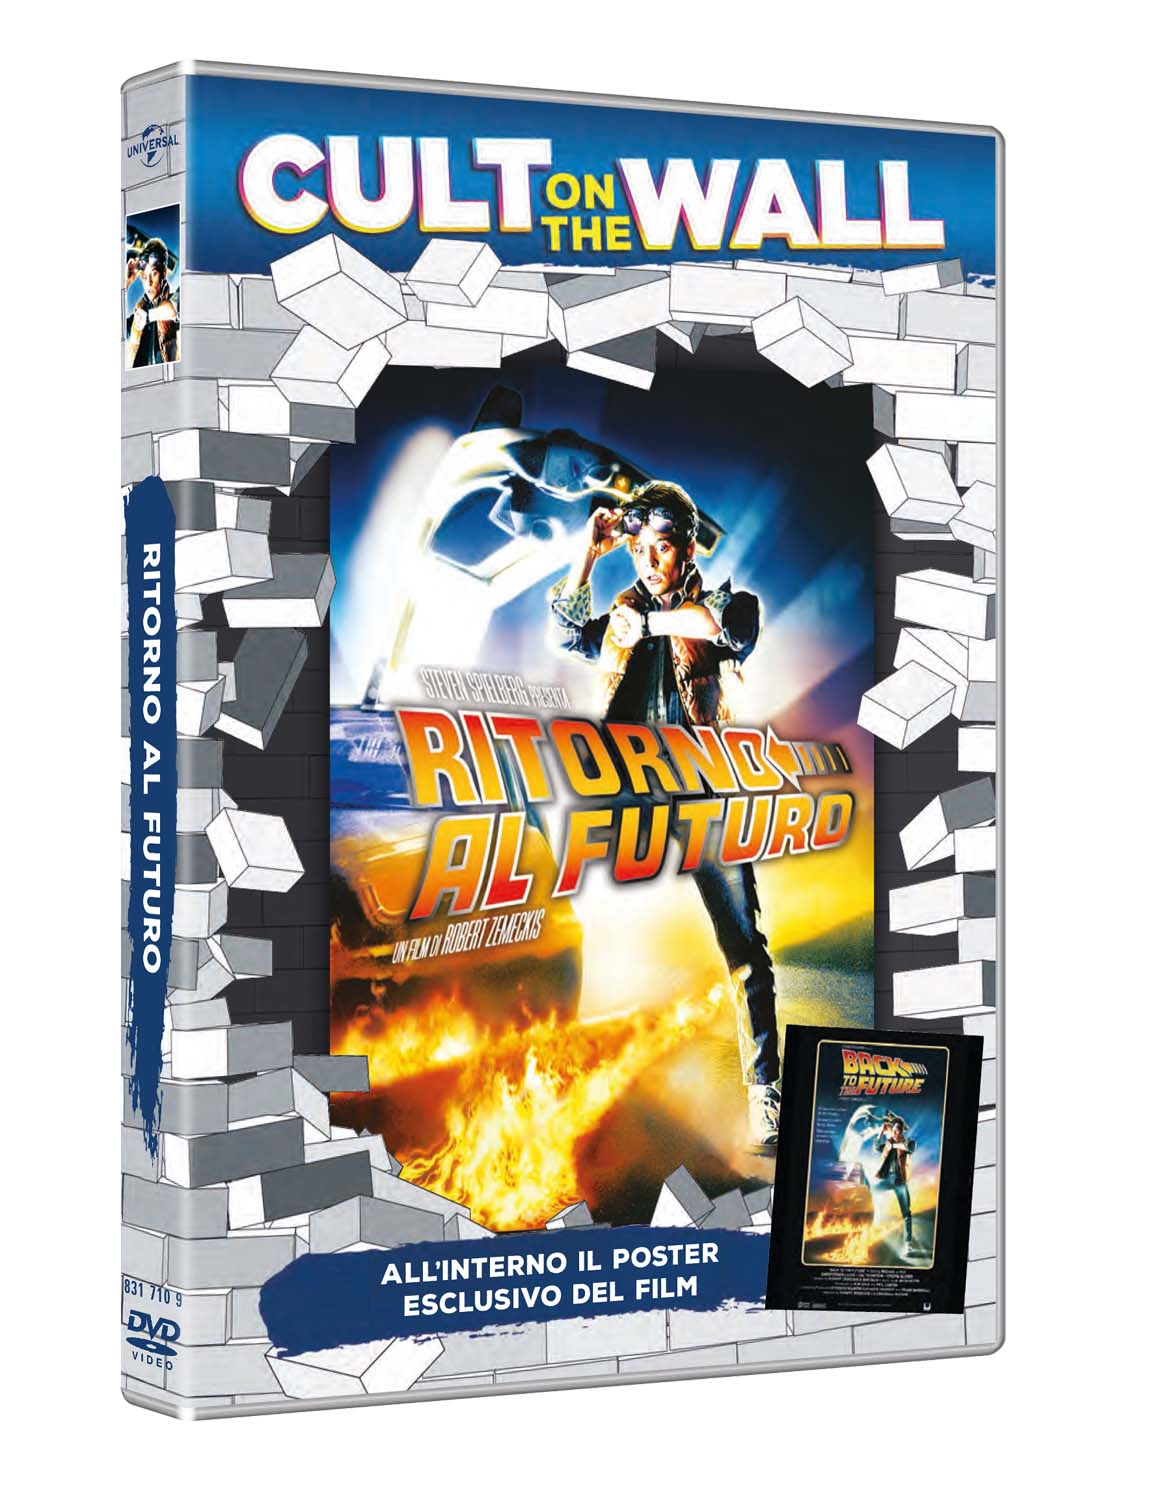 RITORNO AL FUTURO (CULT ON THE WALL) (DVD+POSTER) (DVD)